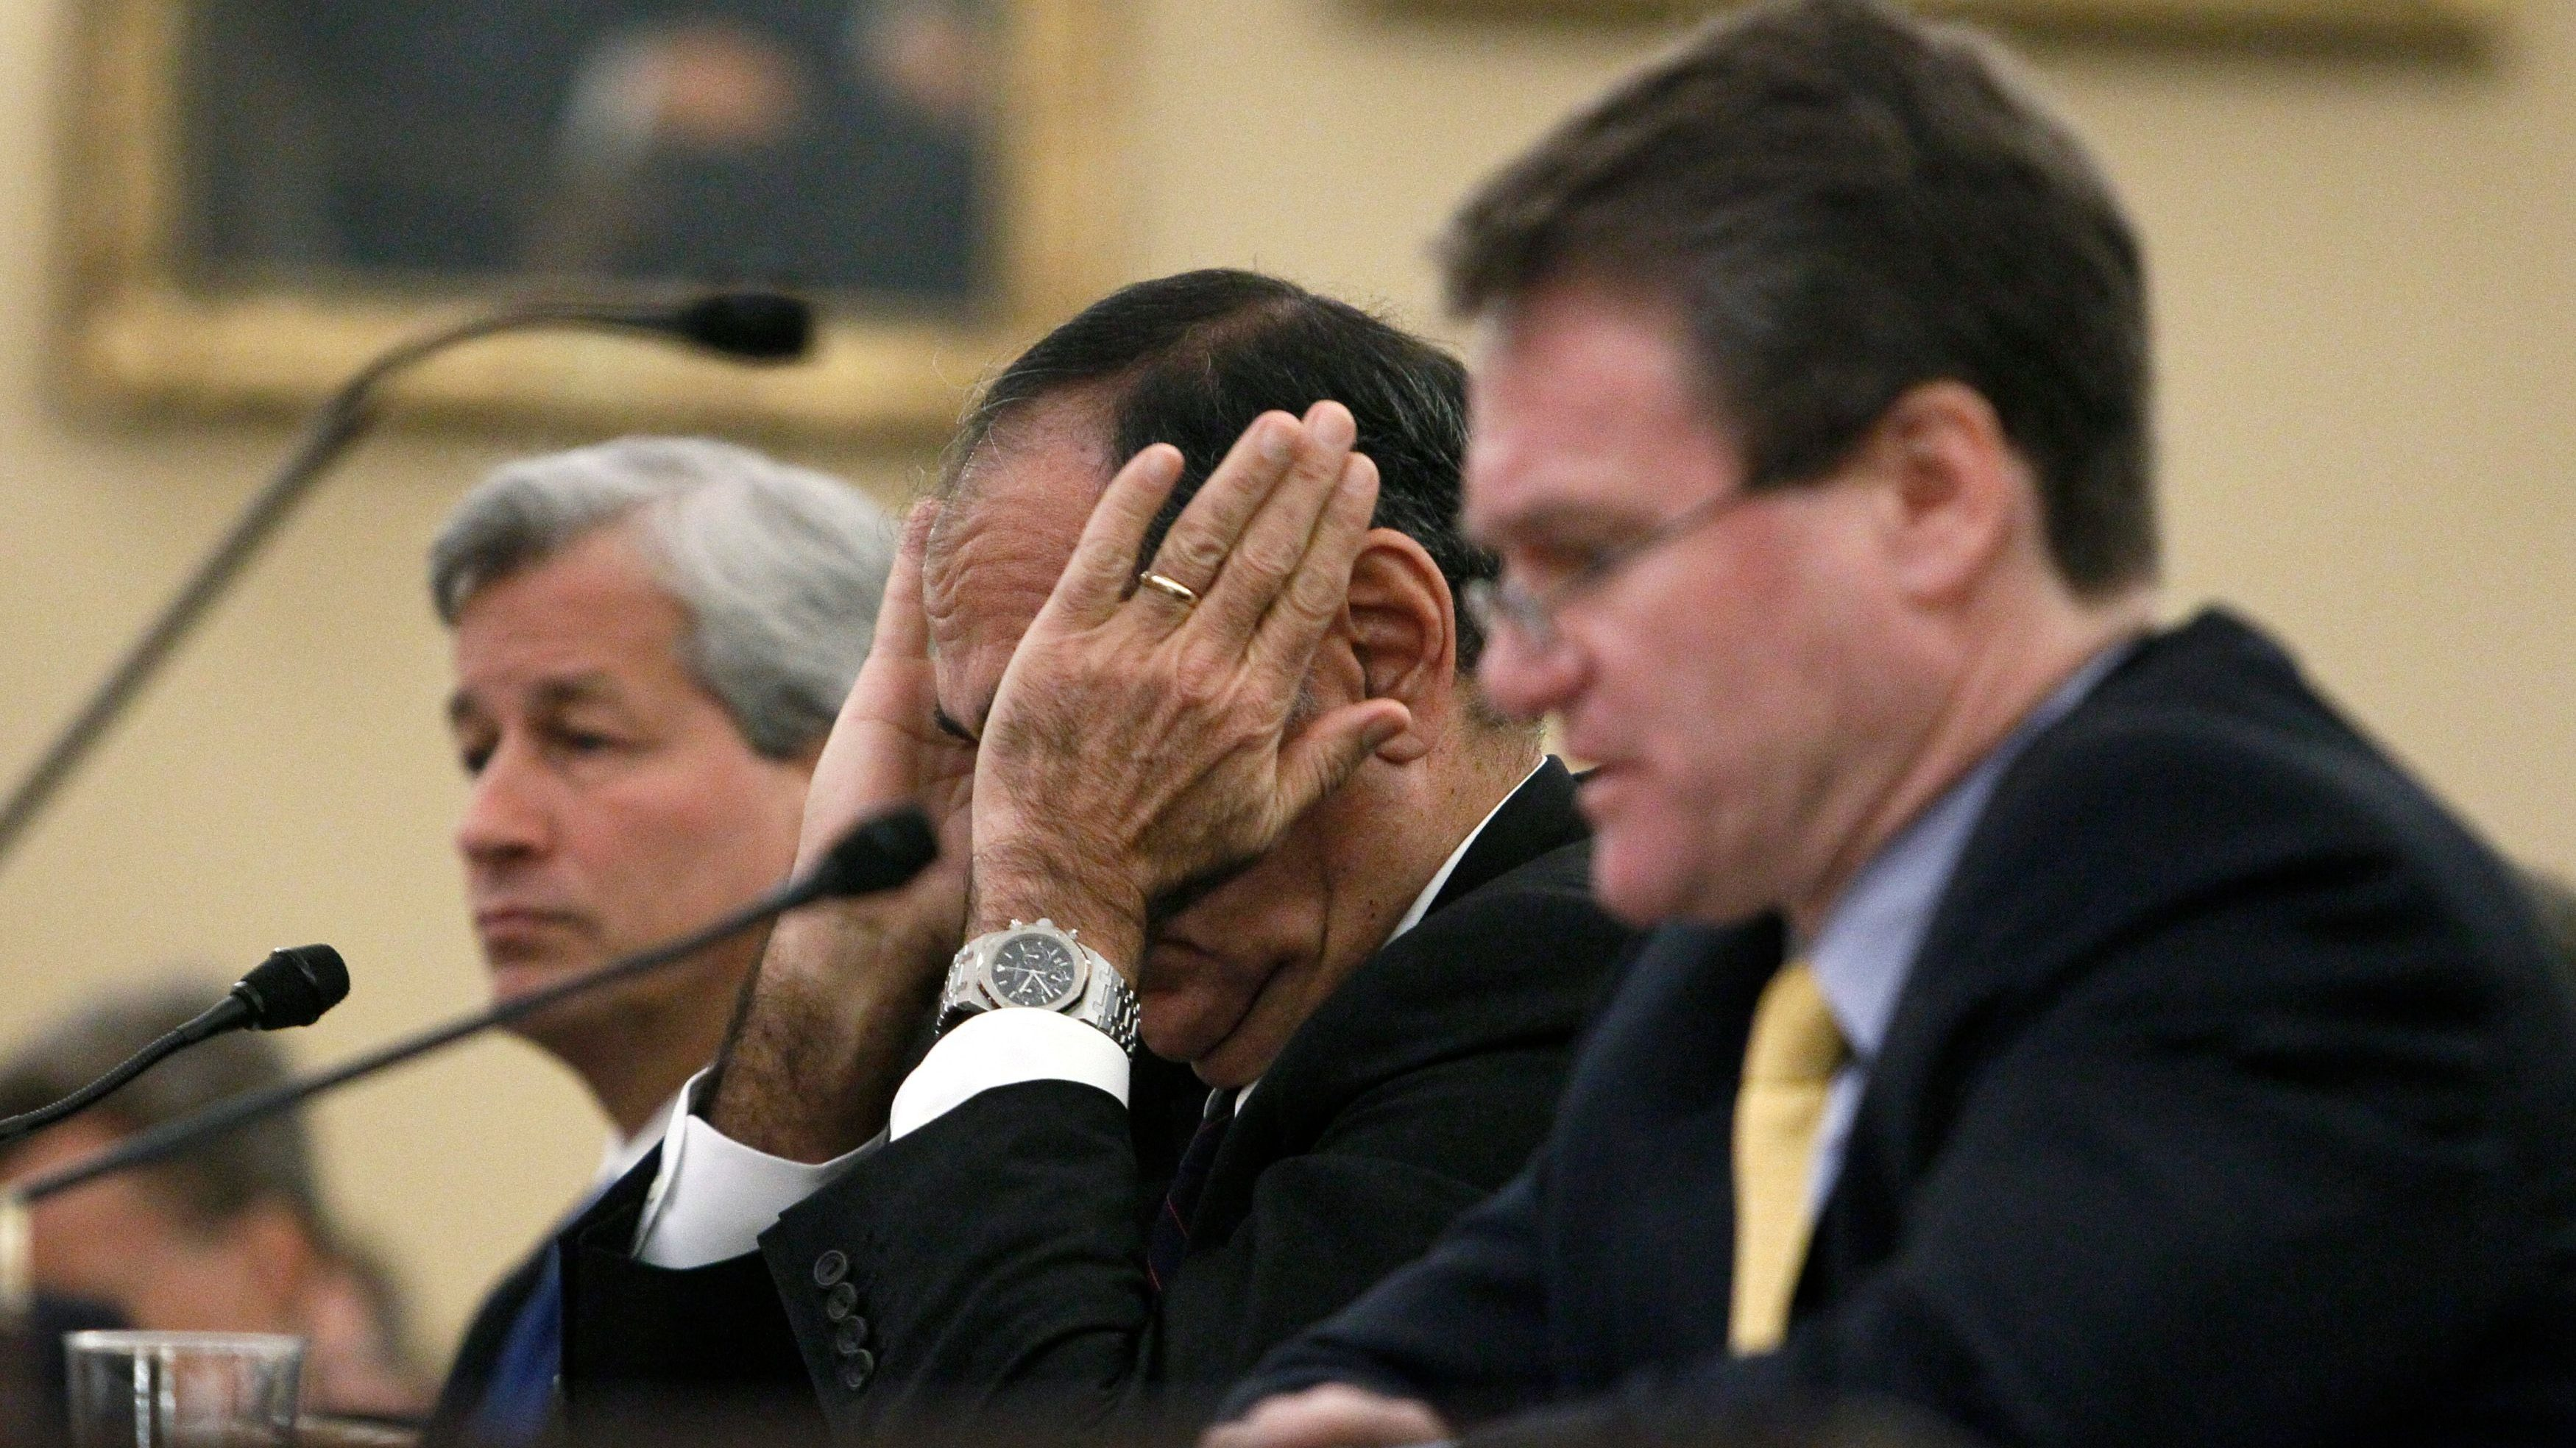 Banking executives Dimon, Mack and Moynihan testify before the Financial Crisis Inquiry Commission in Washington